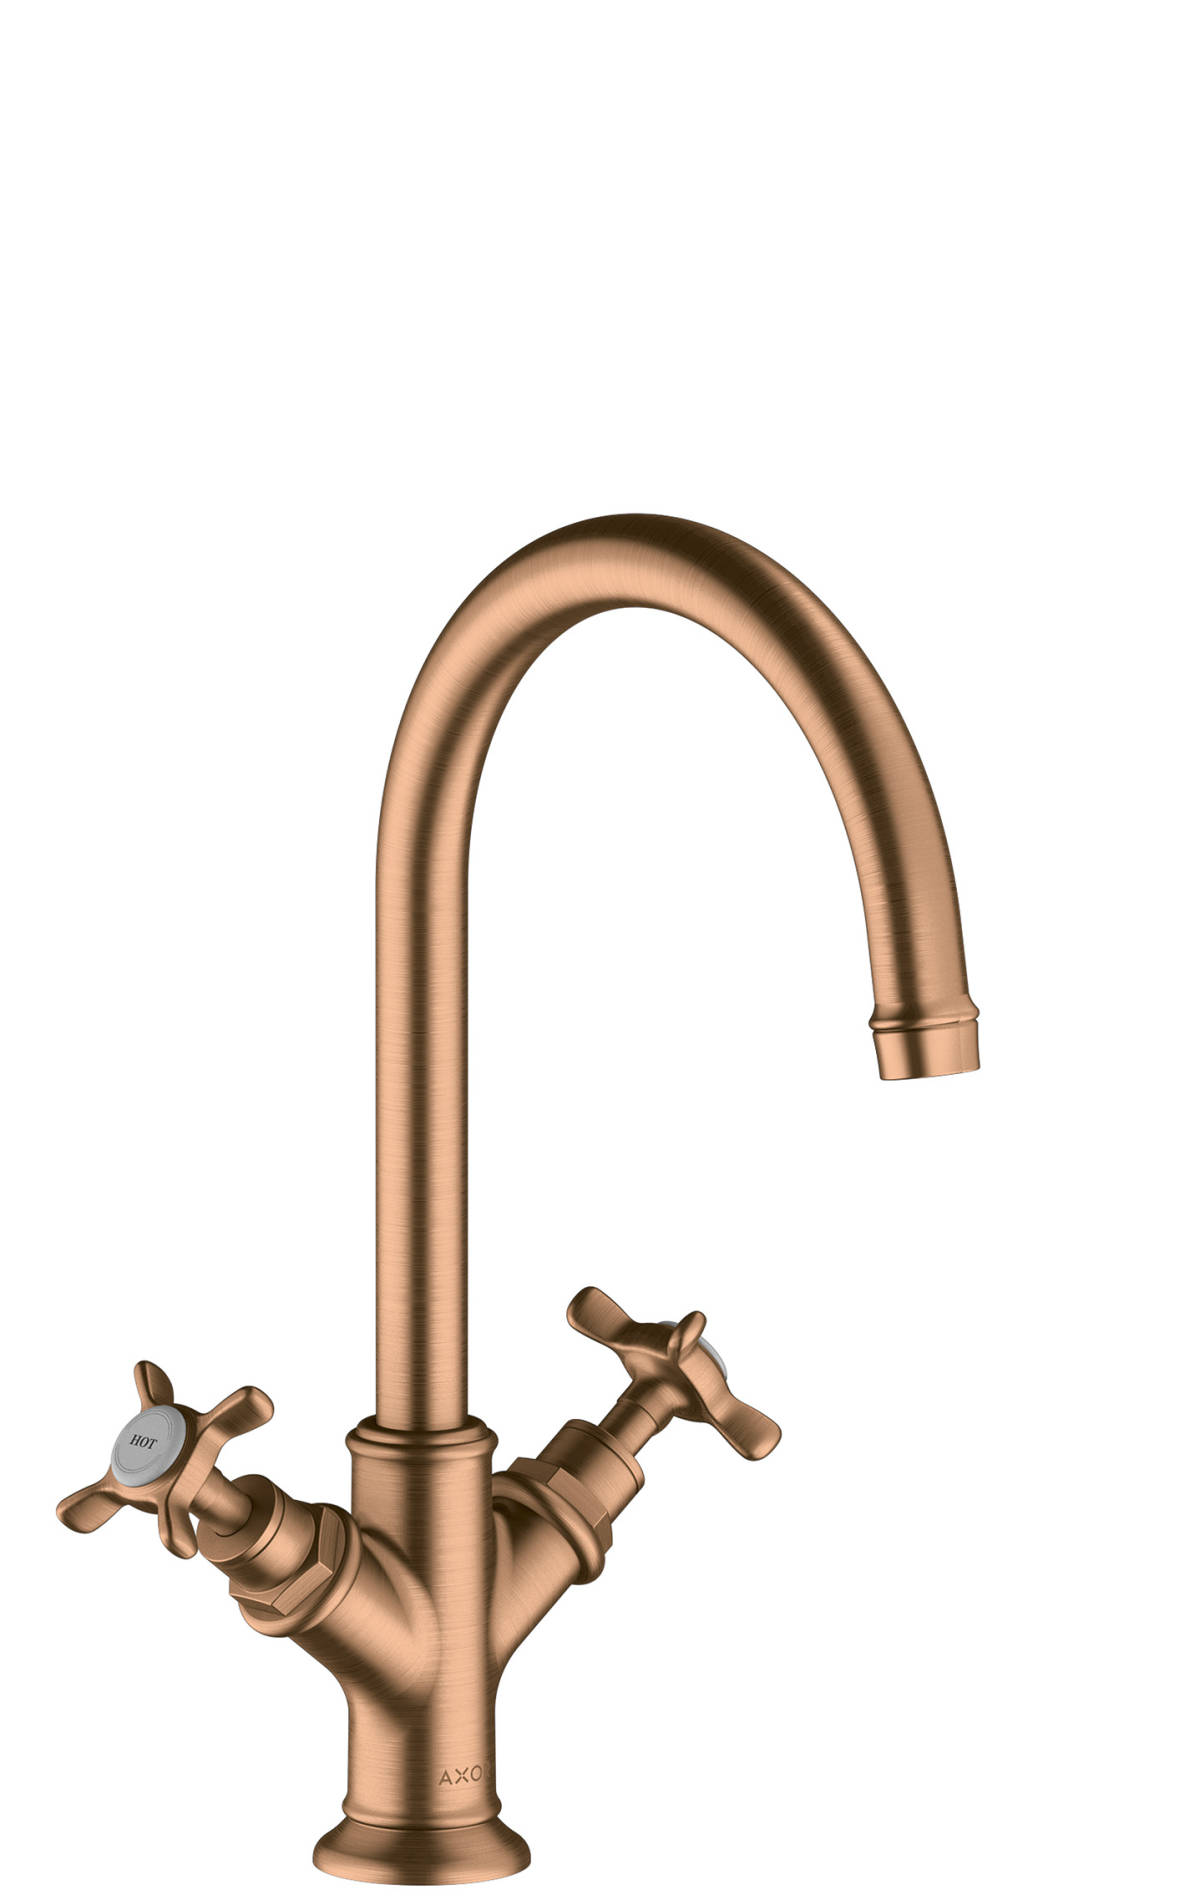 2-handle basin mixer 210 with cross handles and waste set, Brushed Bronze, 16506140